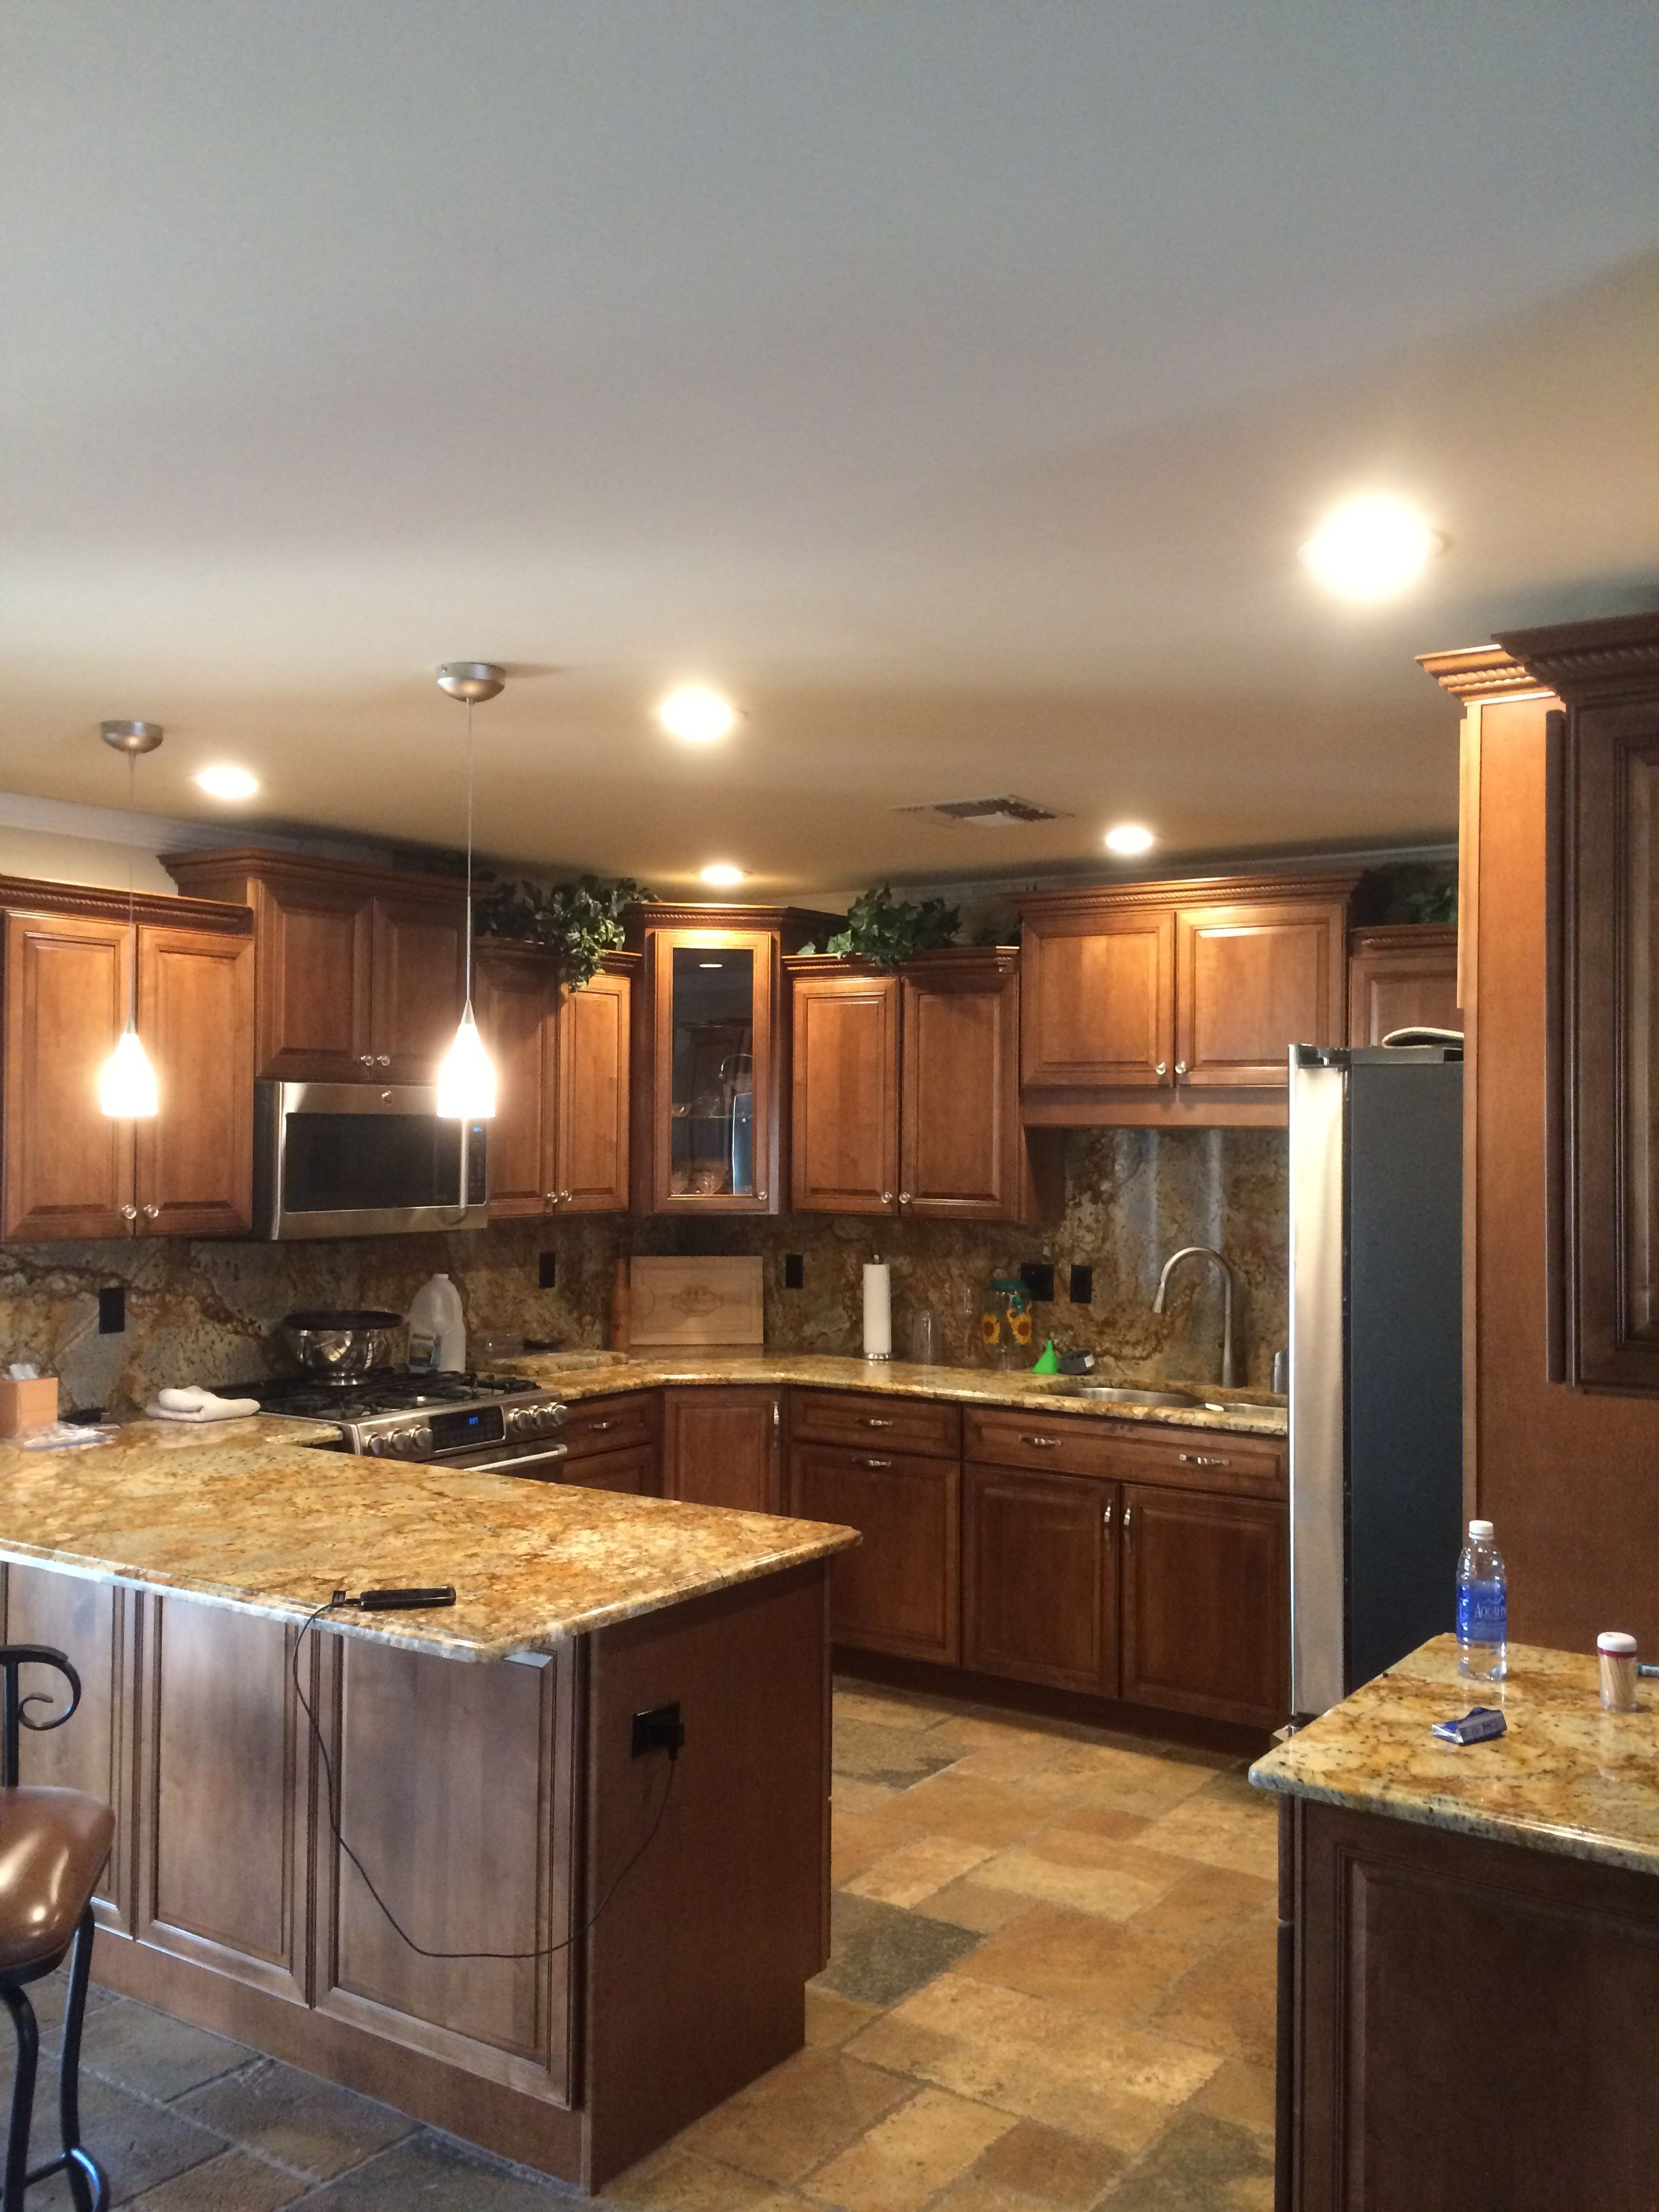 Kitchen Recessed Lighting Az Recessed Lighting Installation Of 4 Inch Leds In Kitchen Az